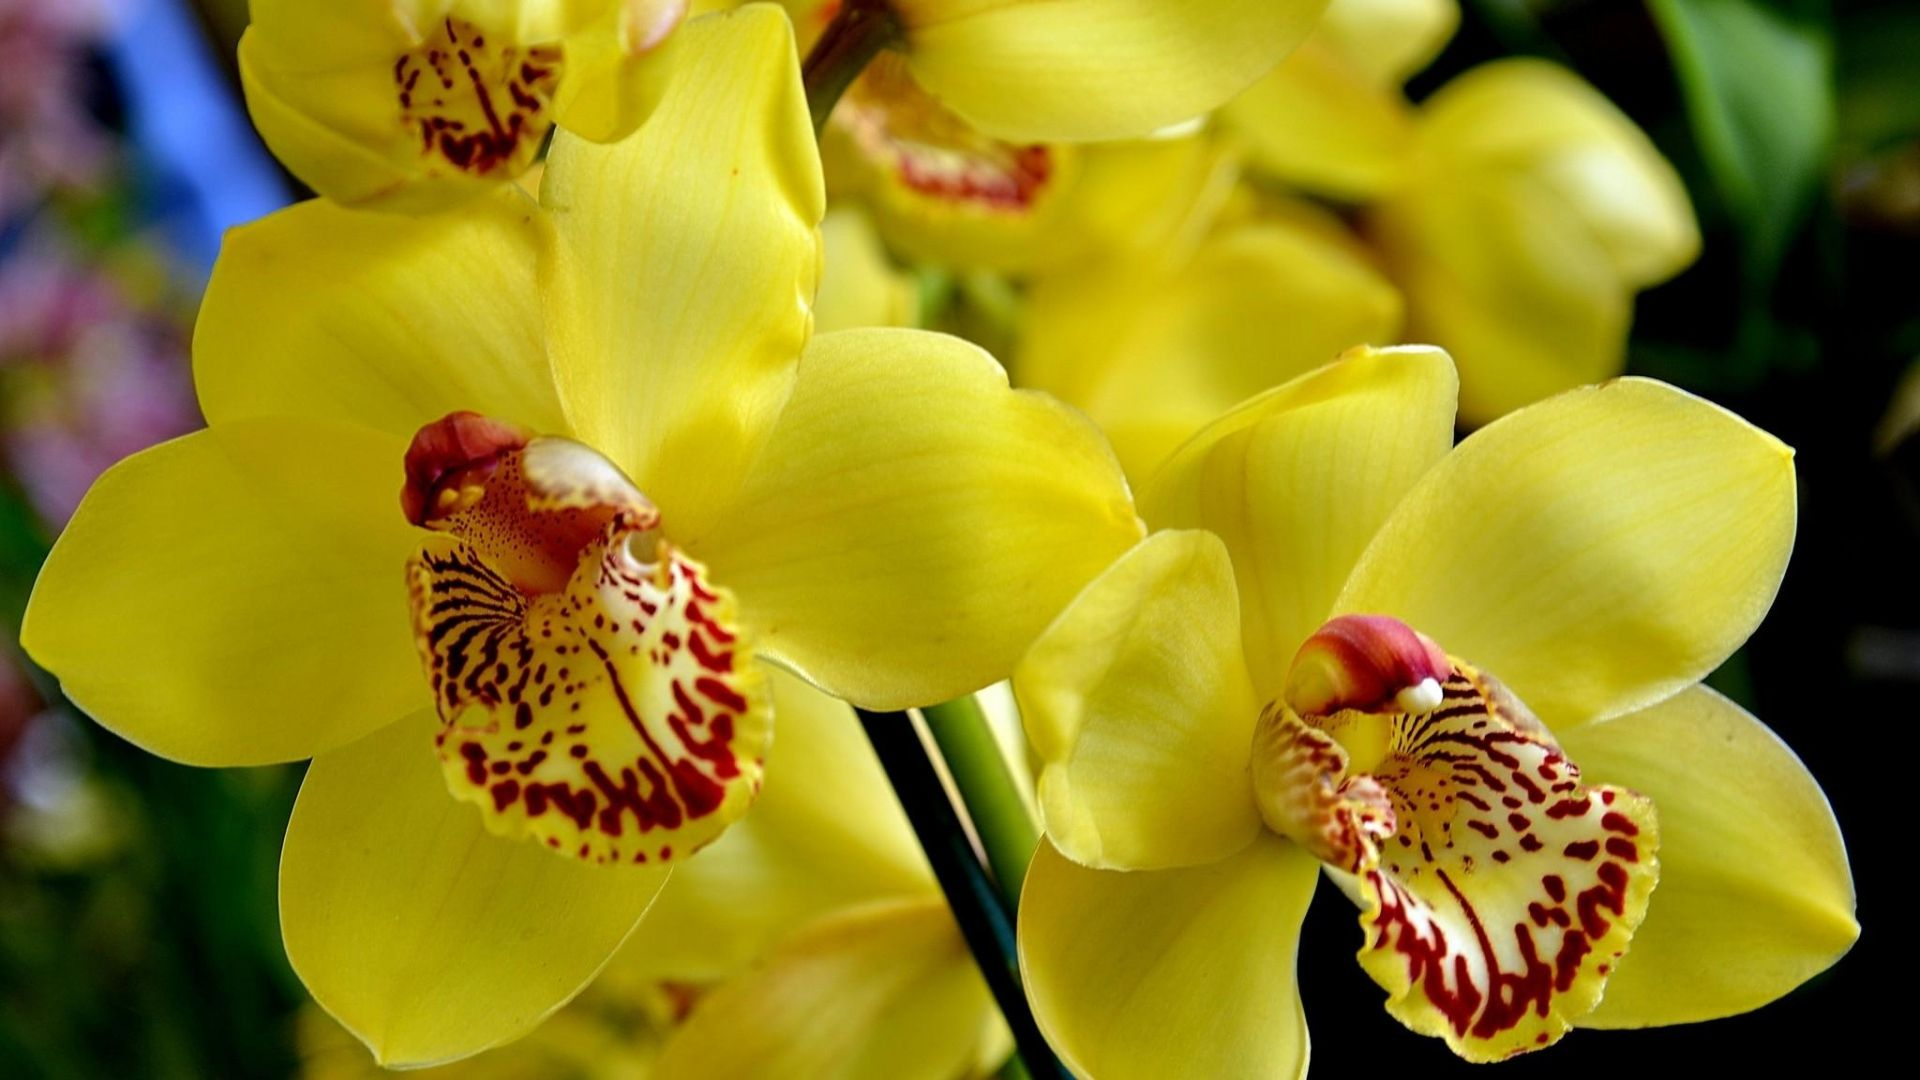 Pin By Antcliff Henderson On Flowers Wallpapers Yellow Orchid Orchids Blue Orchid Flower